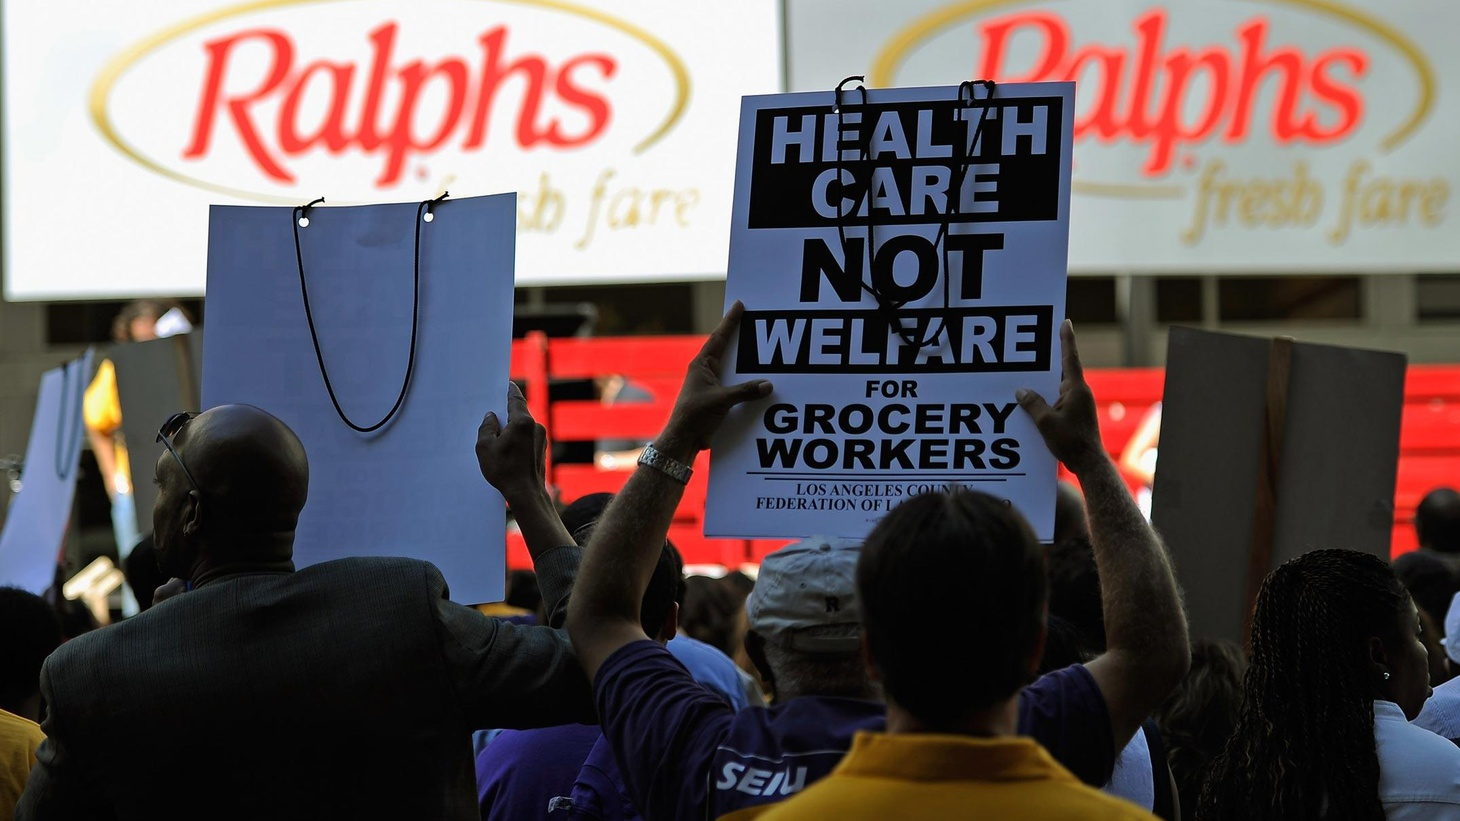 If members of the UFCW ratify a tentative deal, Ralph's, Vons, Albertson's and 54,000 employees will have dodged a bullet. Picket signs had been handed out before the...